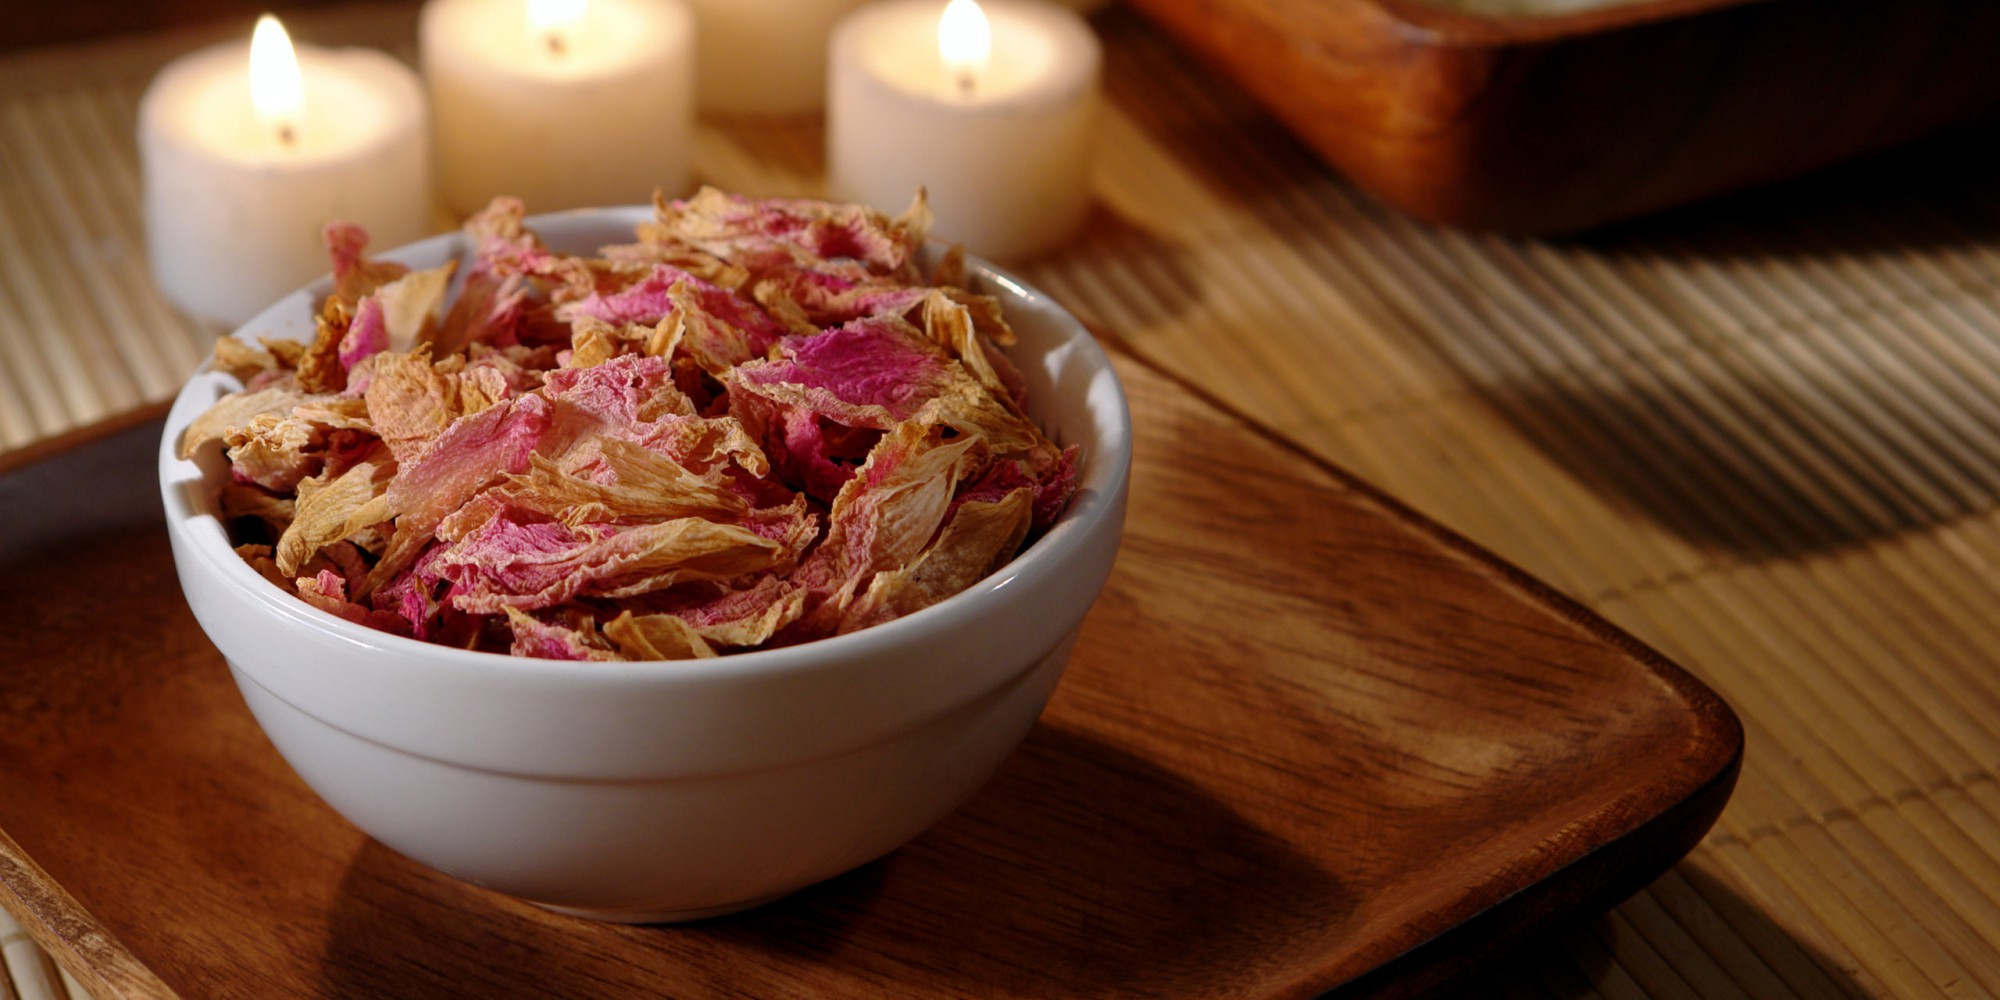 potpourri-and-candles-photography-2560x1600-wallpaper372480